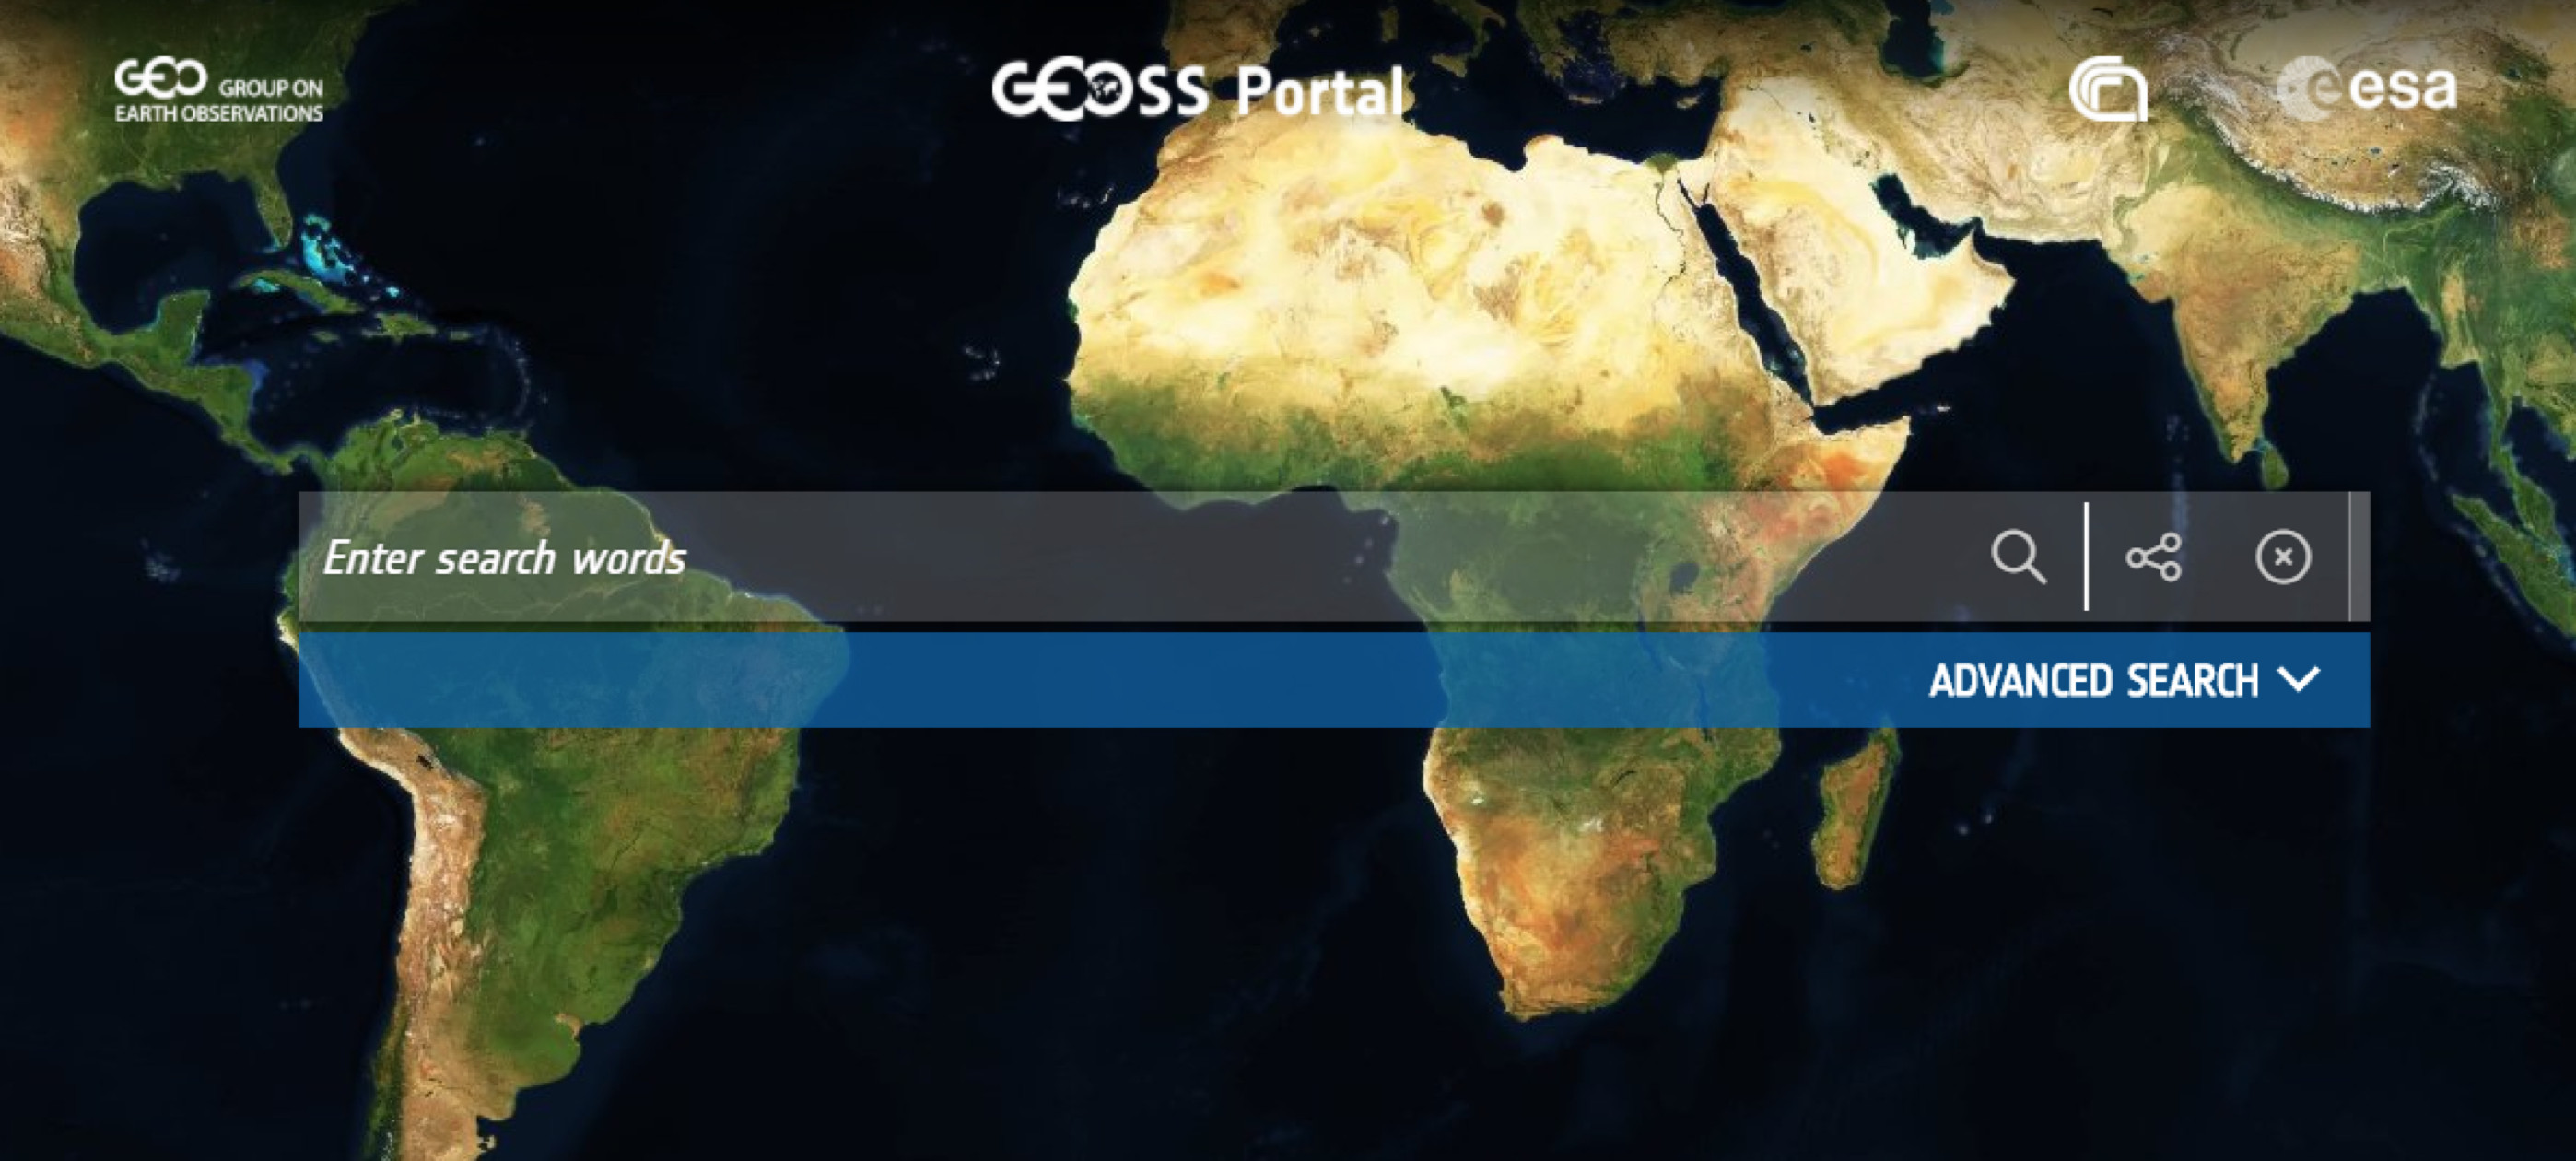 Visit the enhanced GEOSS Portal to access EO data